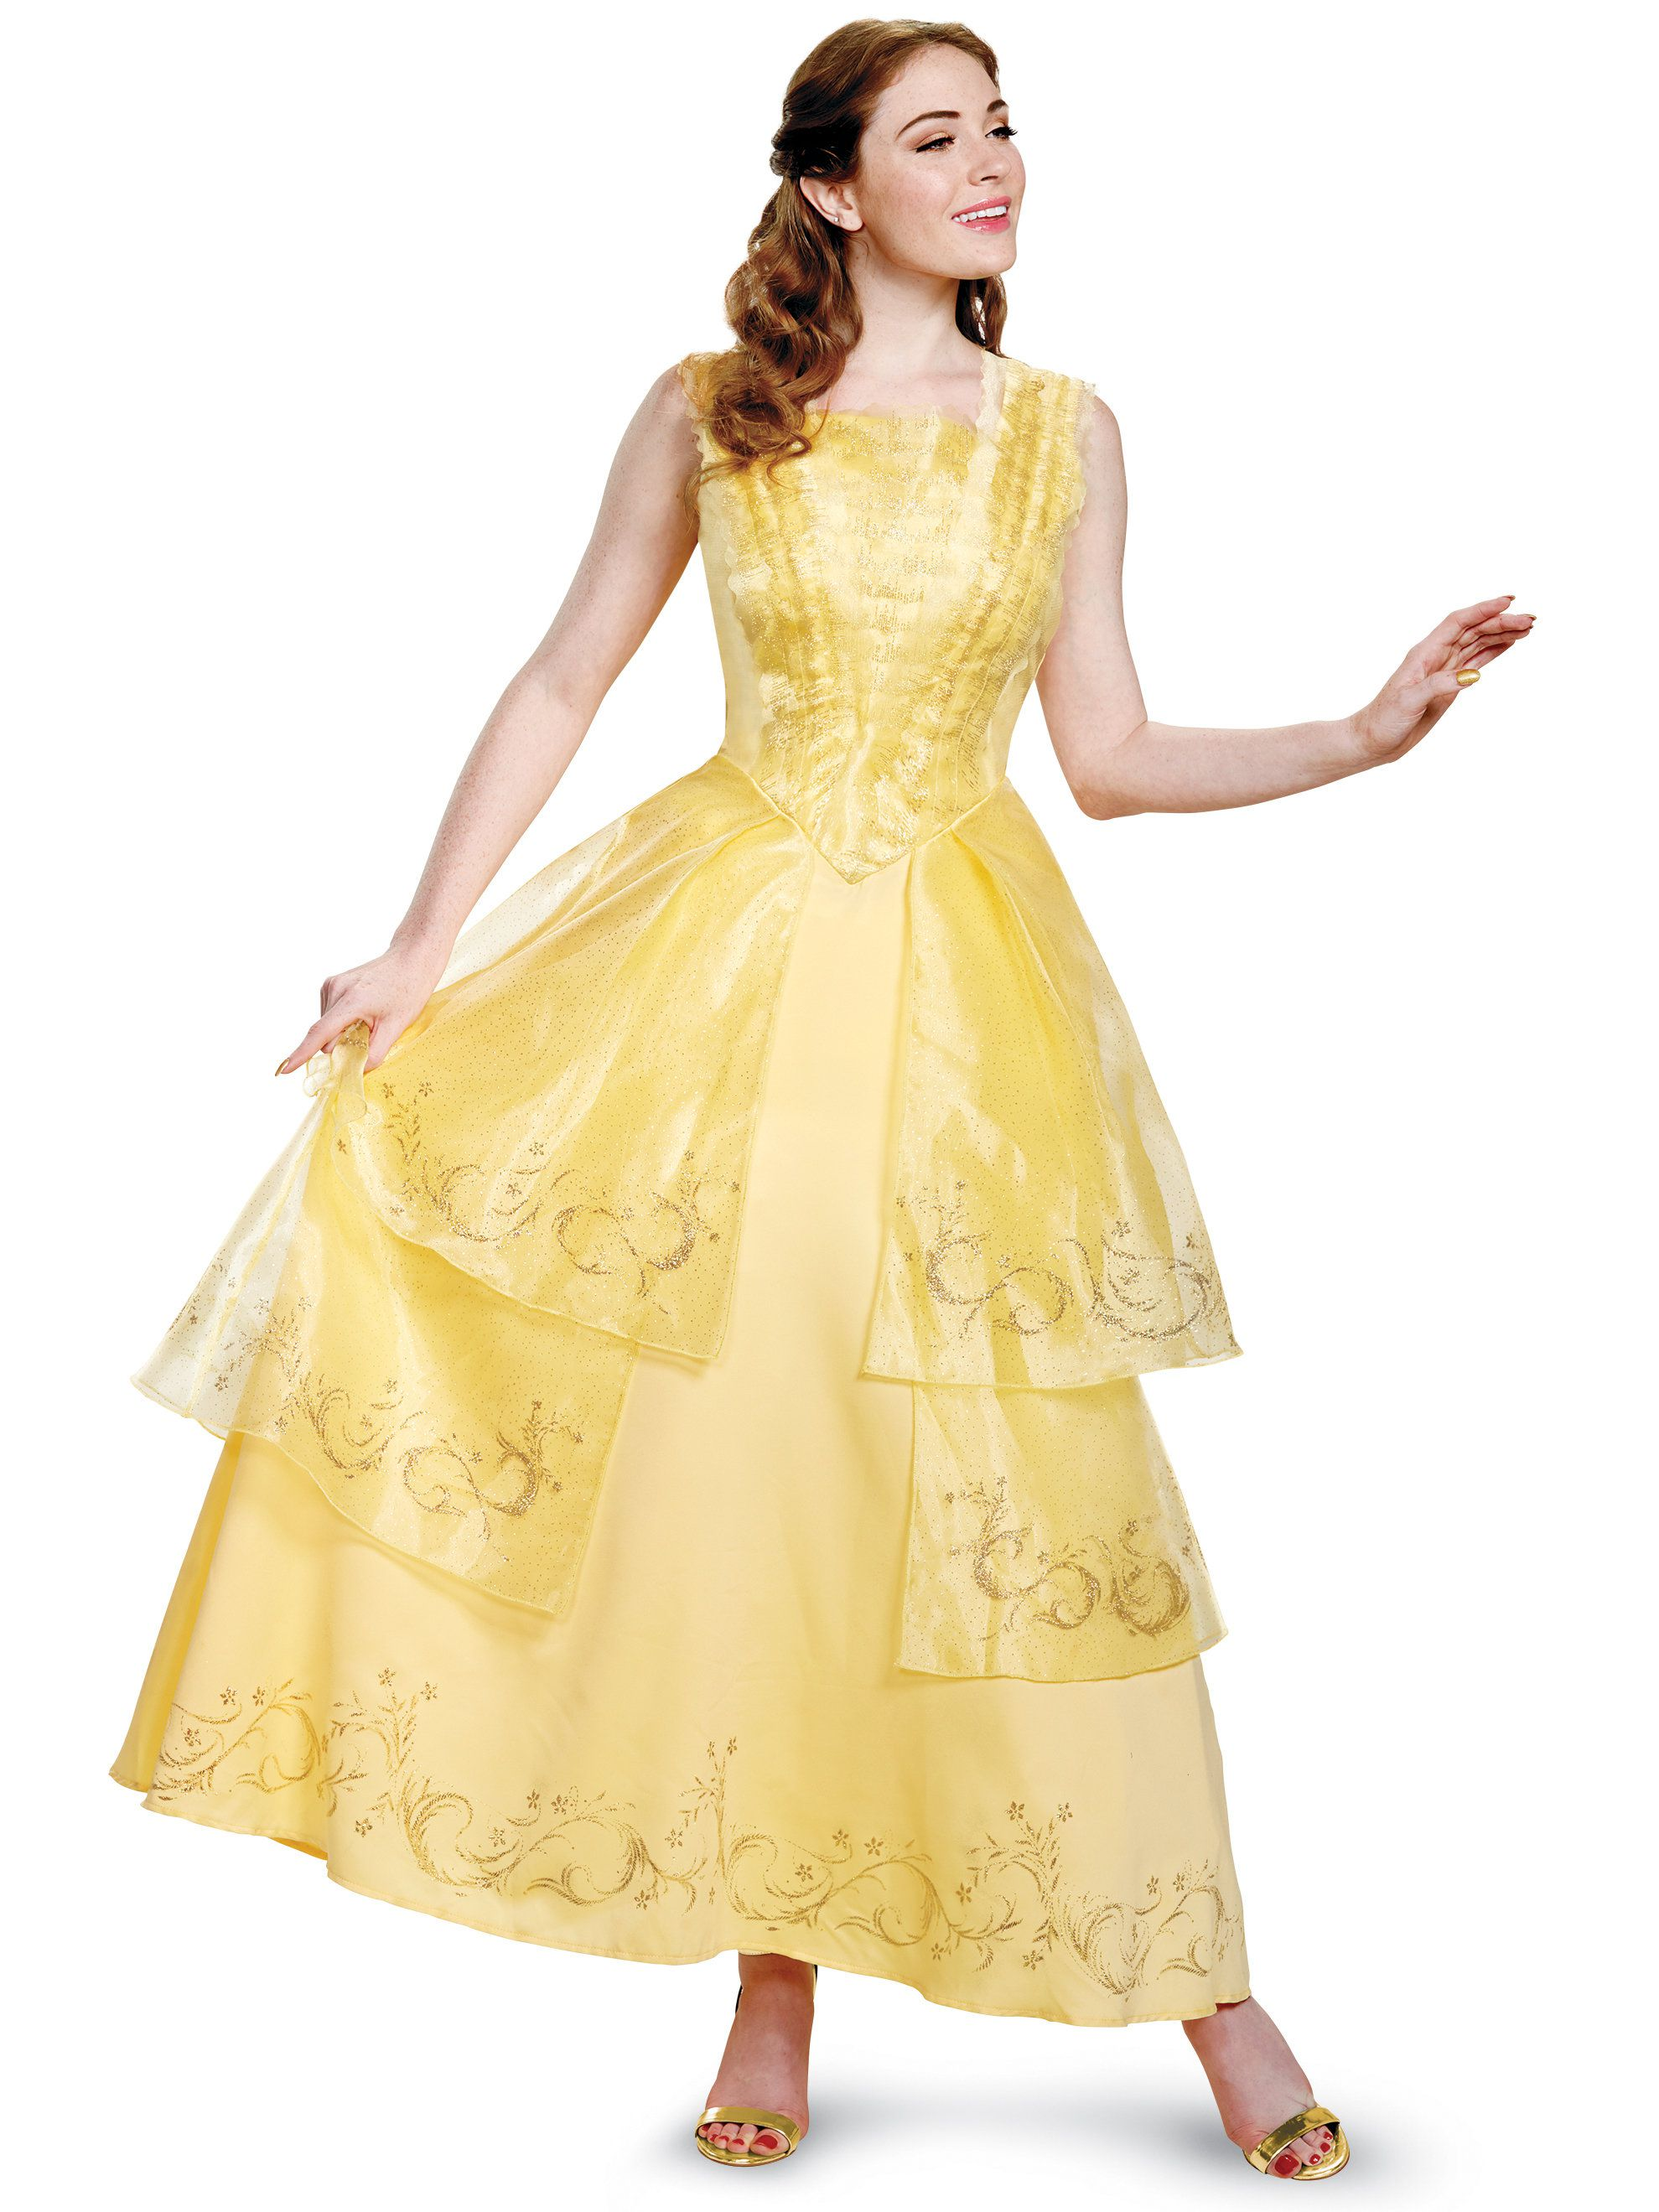 a95fca98d7b9 Belle Ball Gown Prestige Costume For Women - Womens Costumes for ...